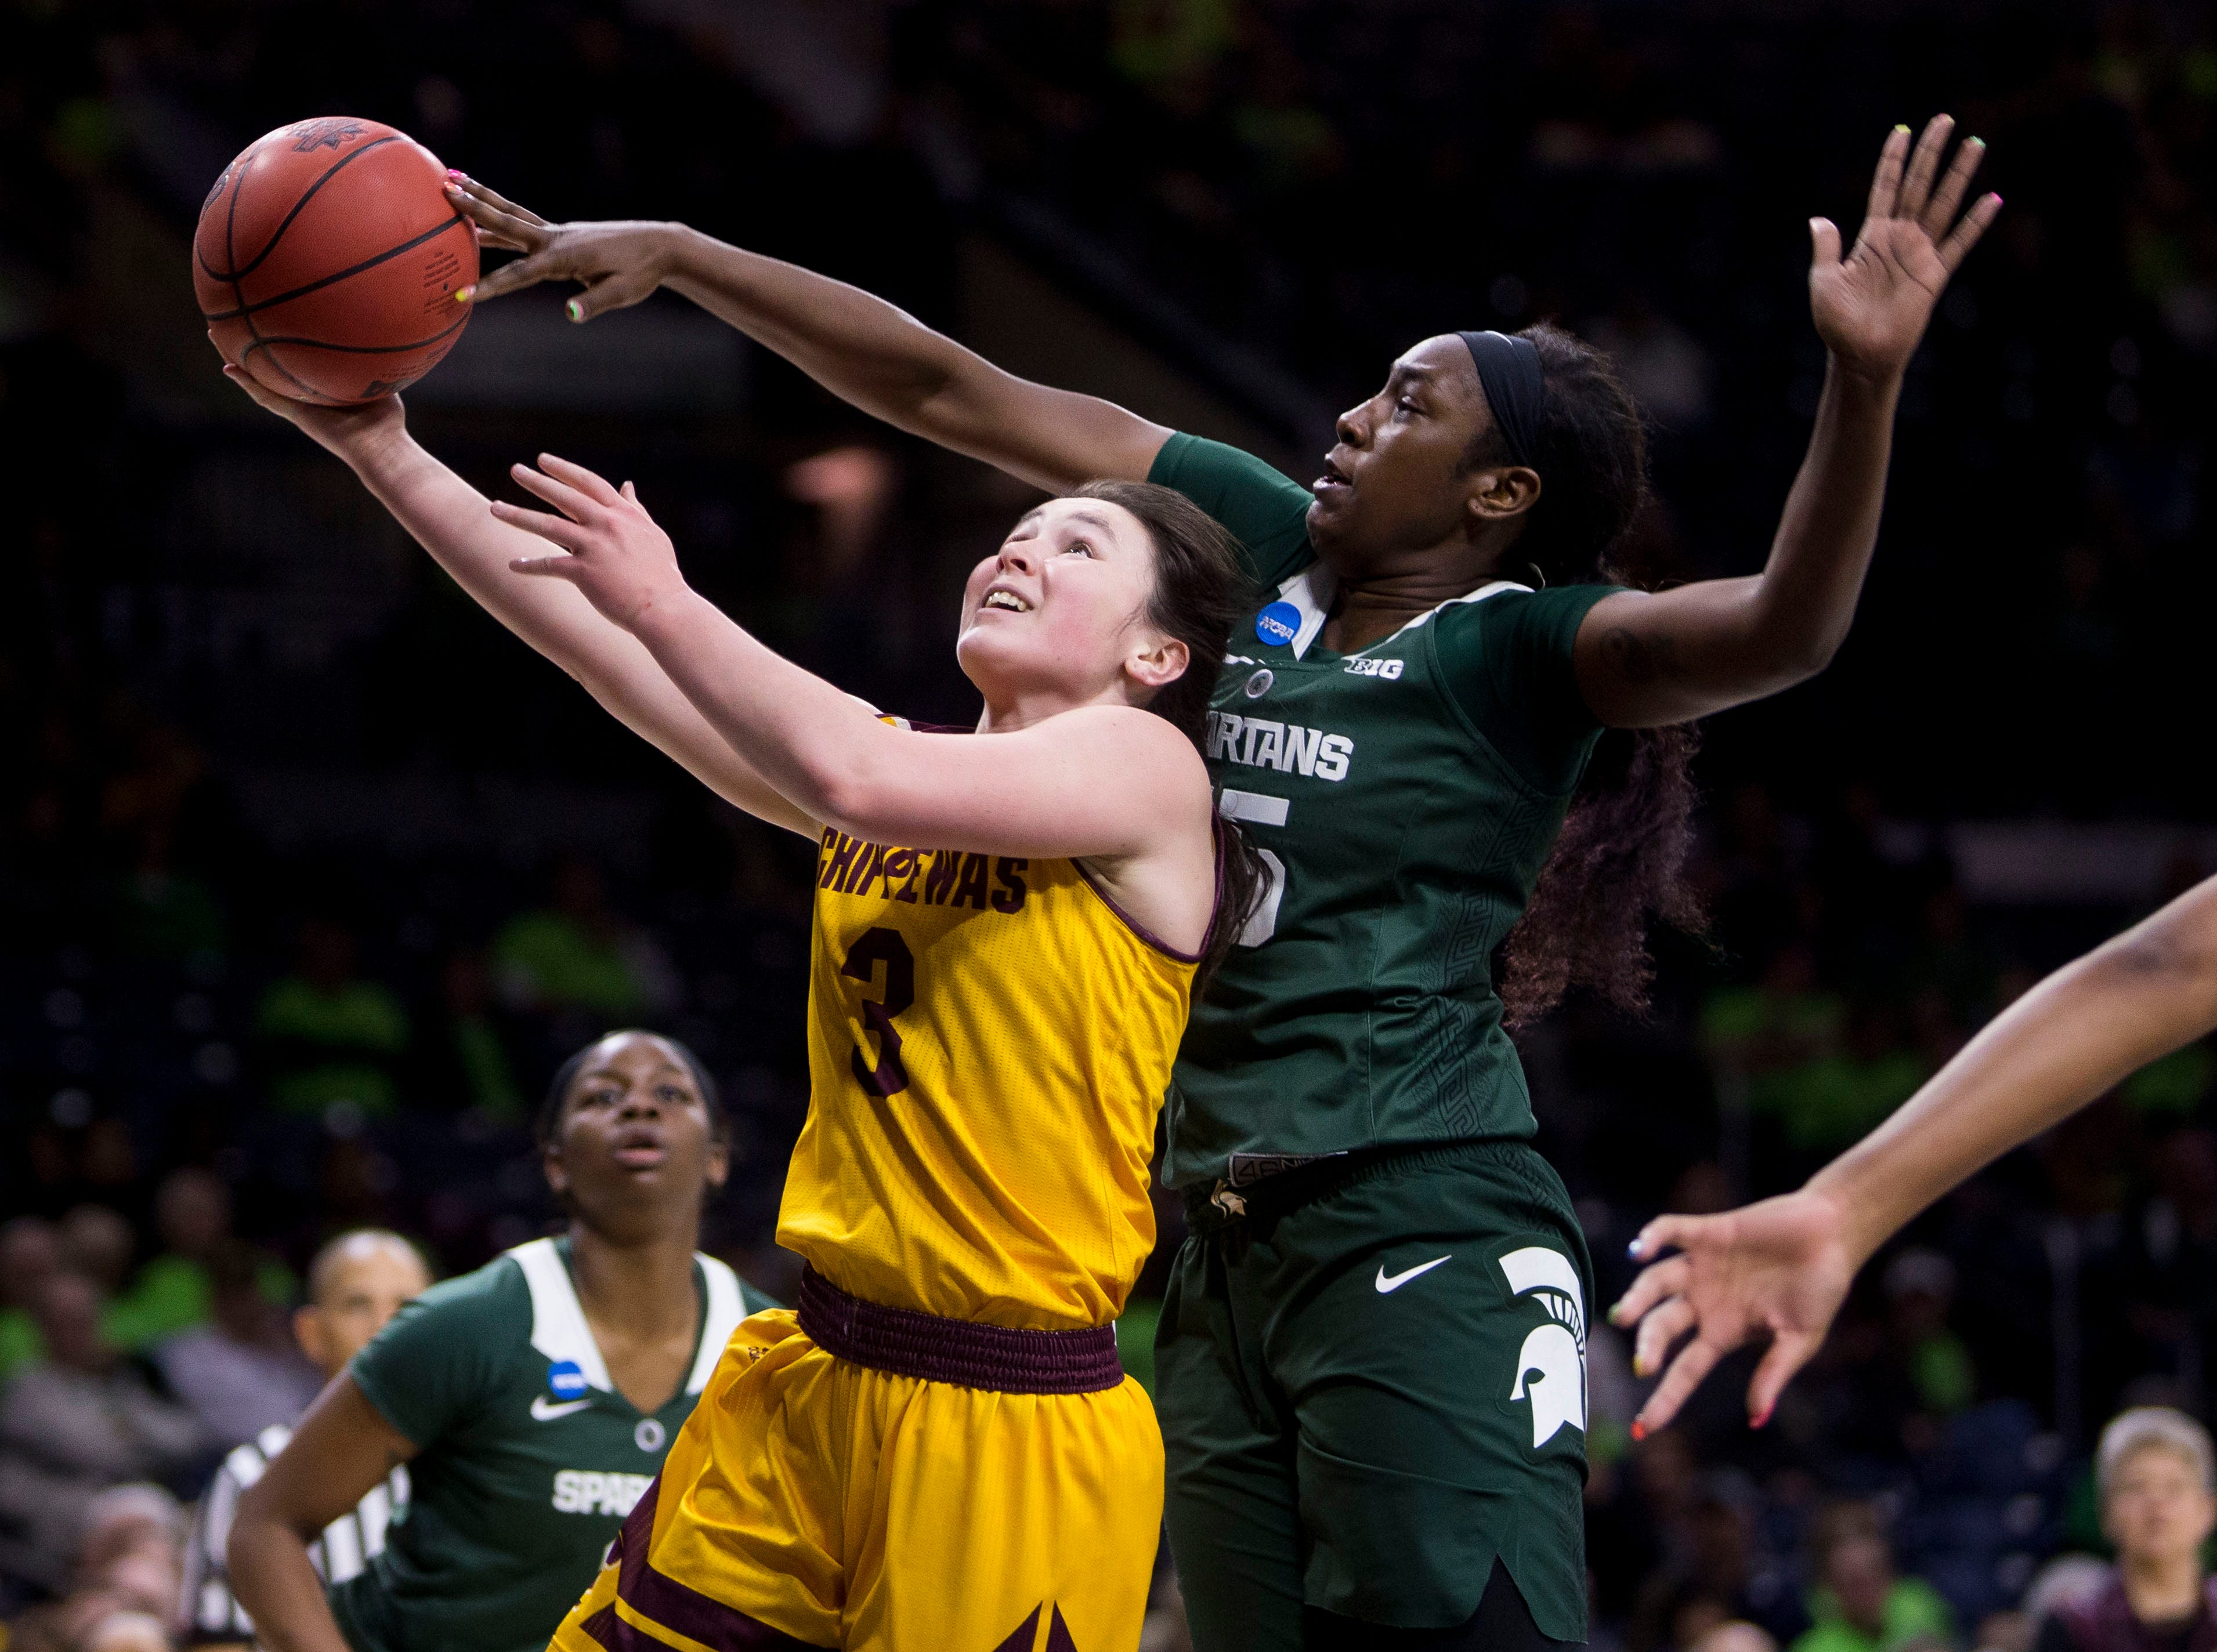 Michigan State's Victoria Gaines, right, blocks a shot by Central Michigan's Presley Hudson (3) during a first-round game in the NCAA women's college basketball tournament in South Bend, Ind., Saturday, March 23, 2019. Michigan State won 88-87.